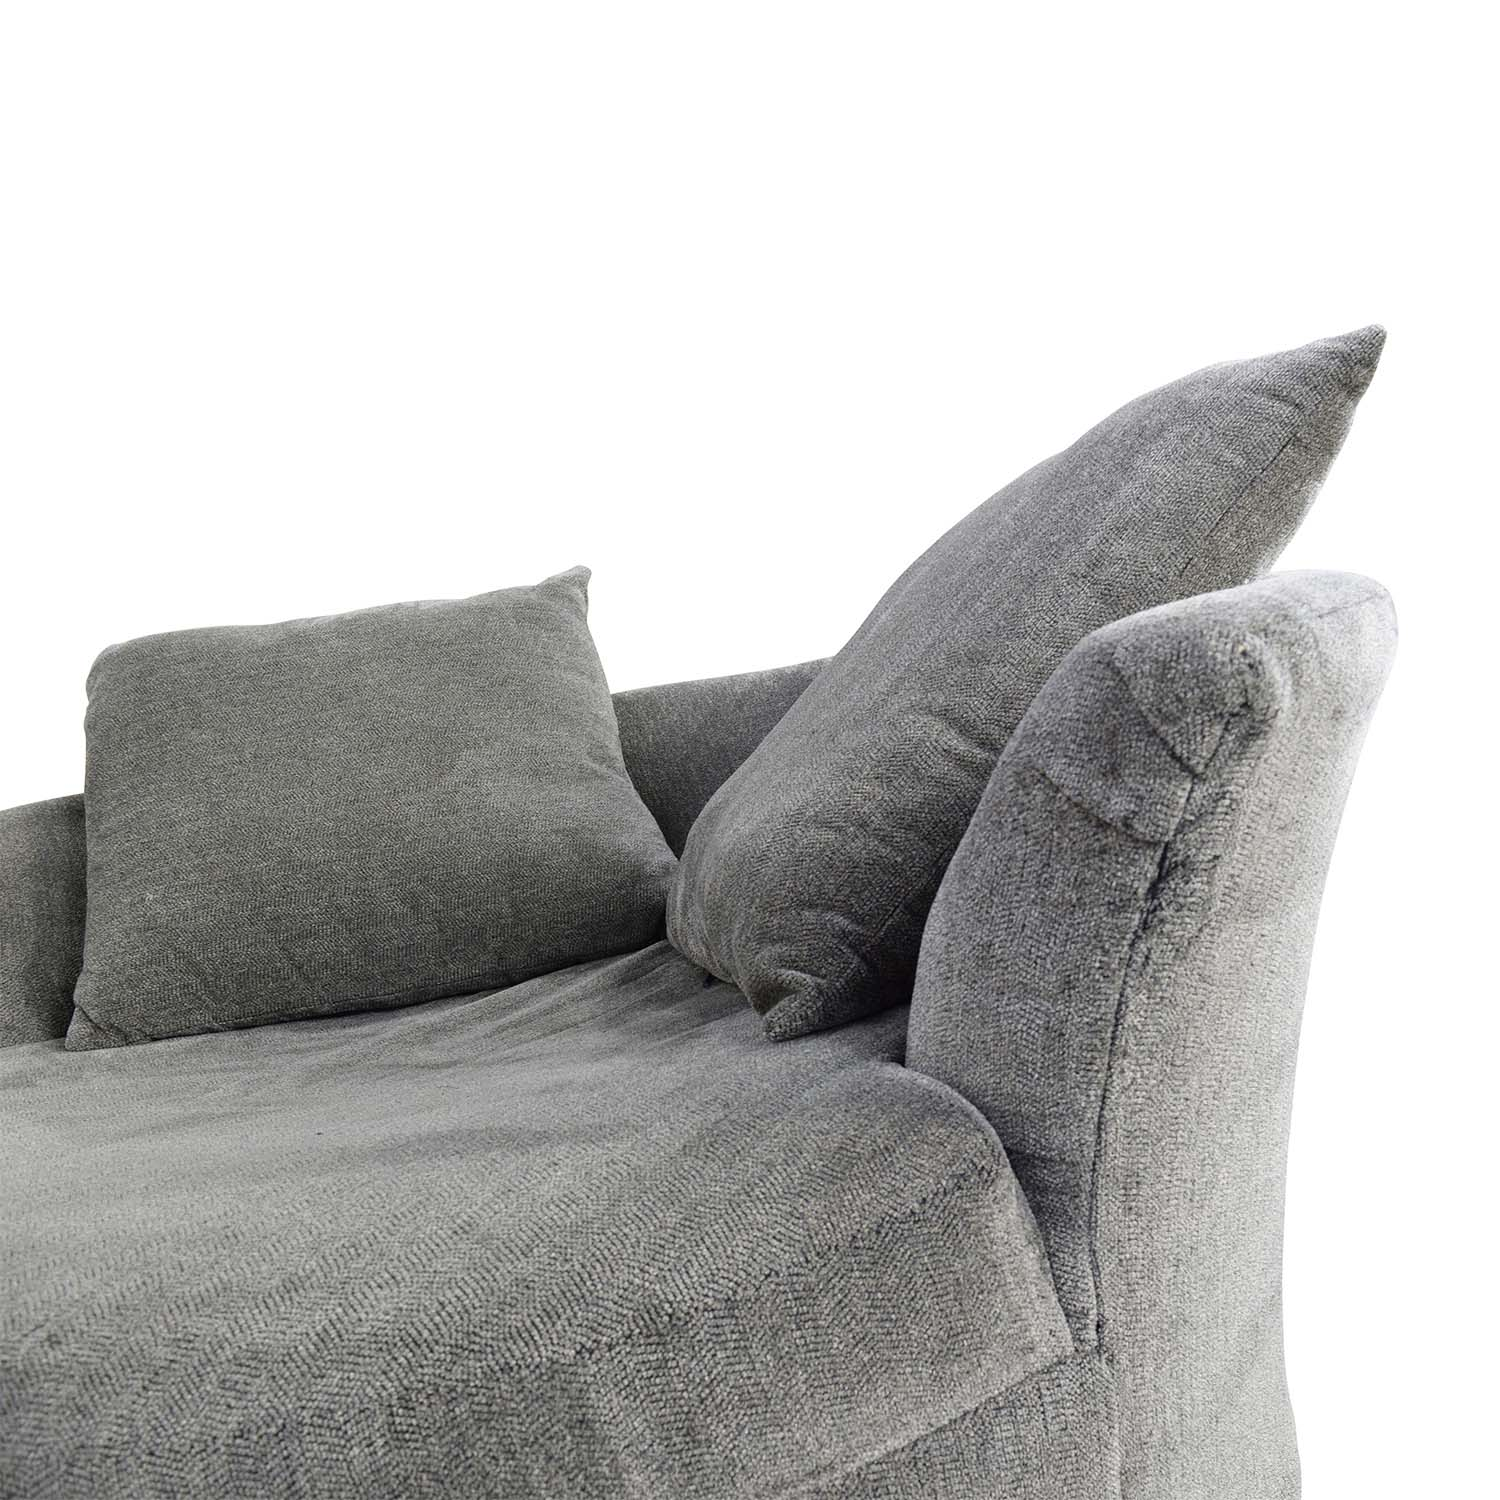 76% OFF Bob s Furniture Bob s Furniture Grey Circular Loveseat